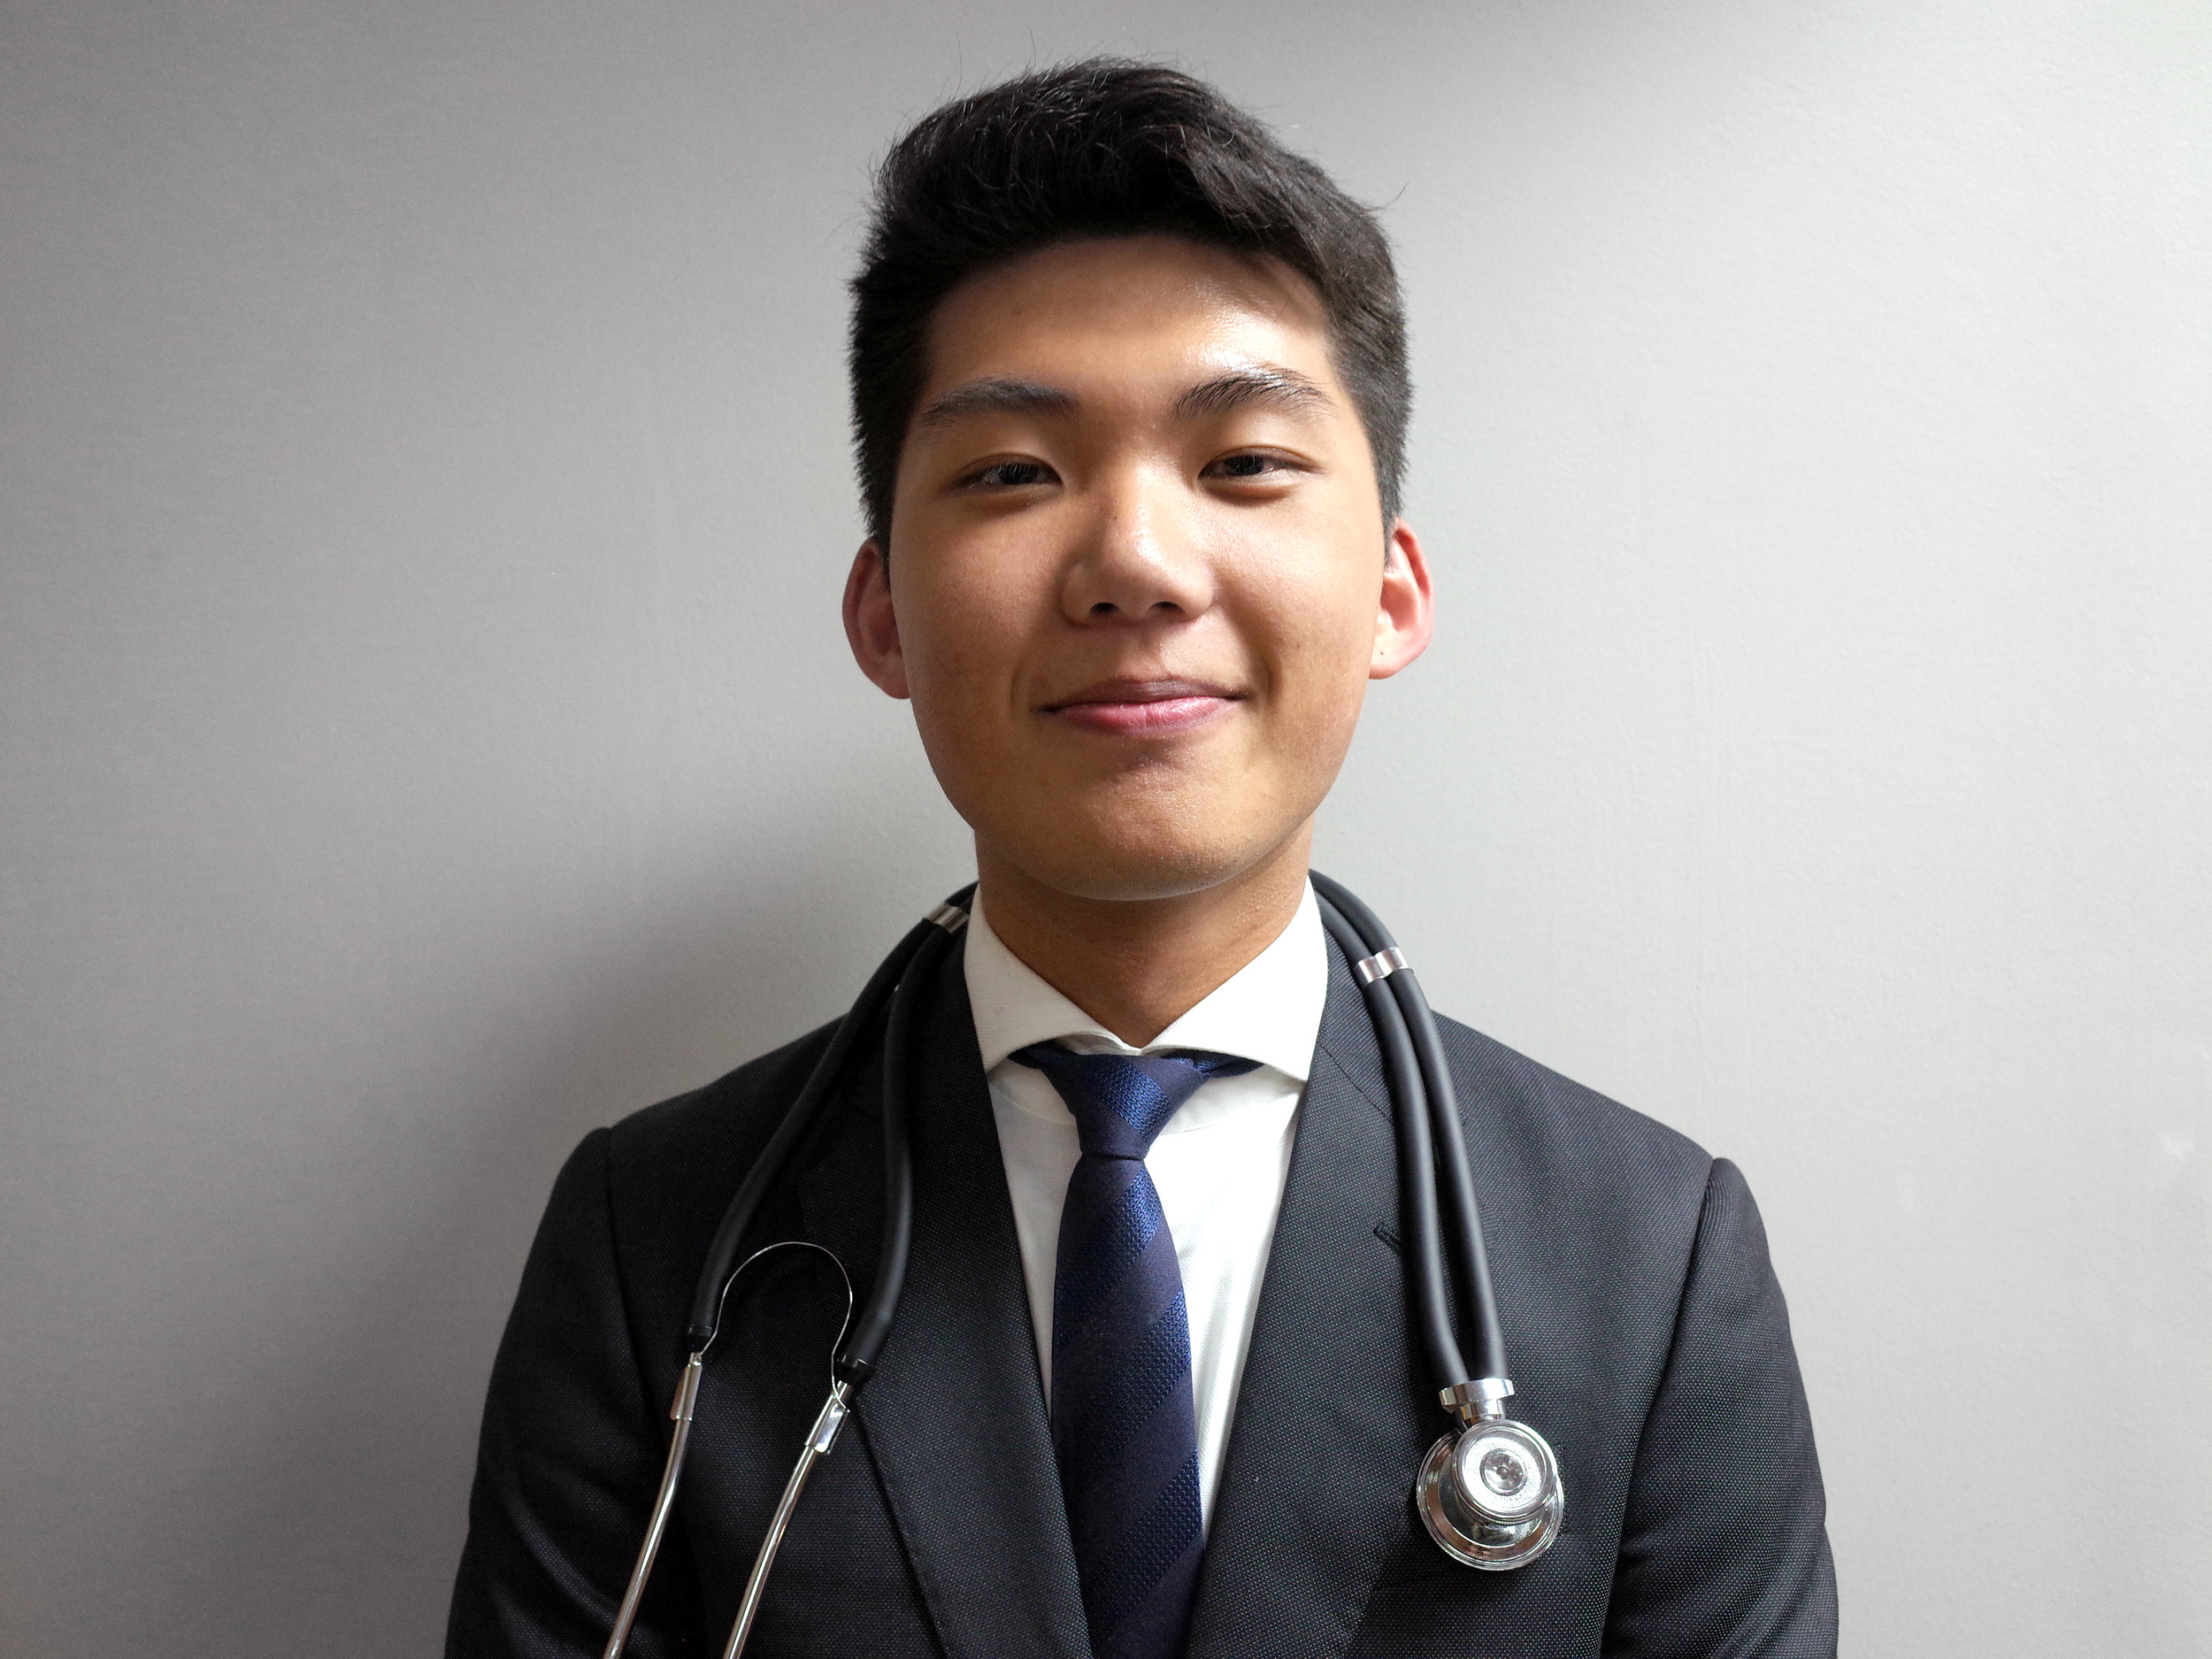 Jay Wei   Major: Biochemistry and Molecular Biology Career Goal: Surgeon